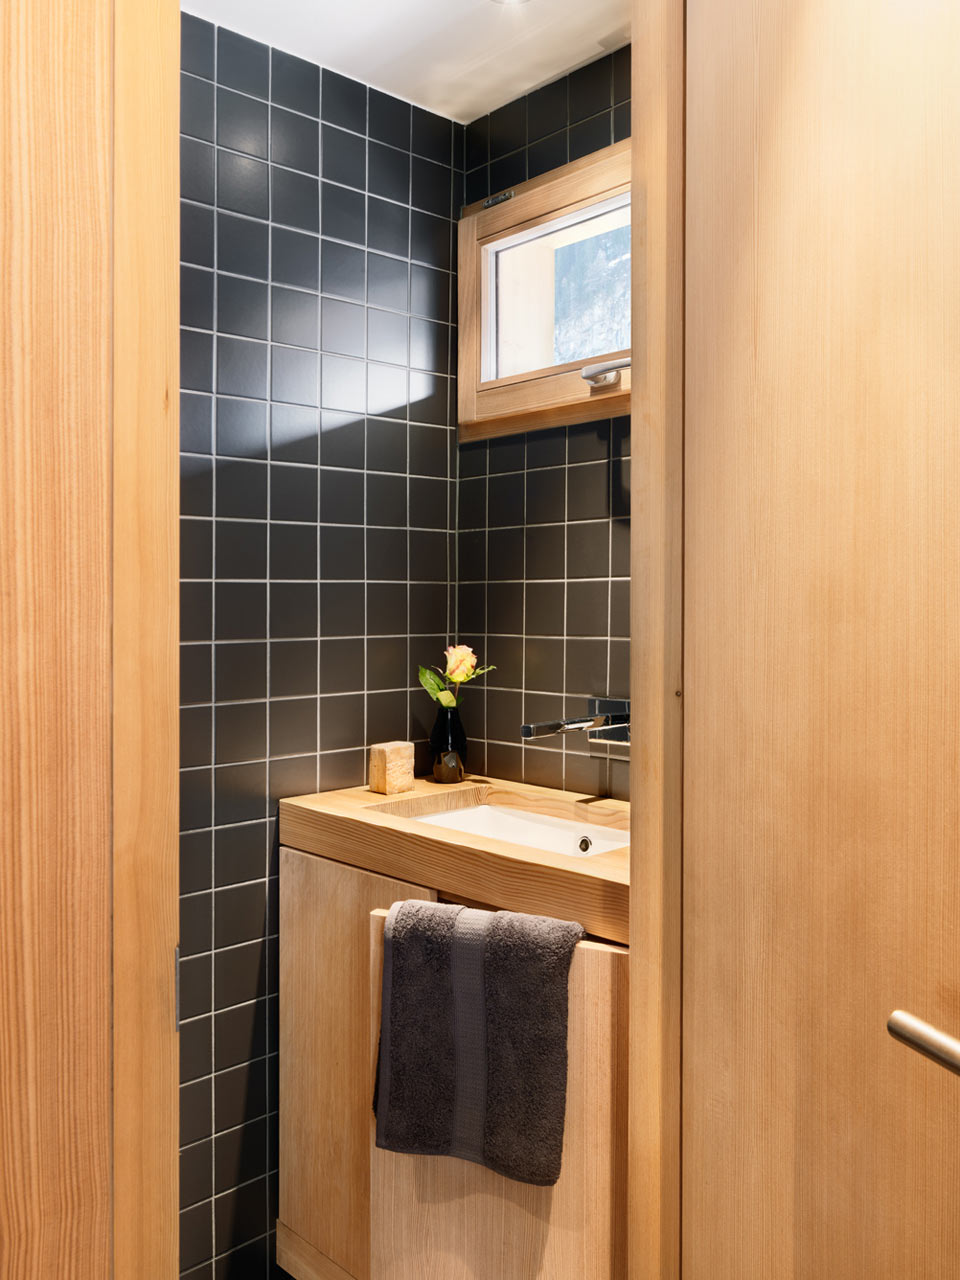 Arsenal-B47-Ralph-Germann-architectes-10-bathroom